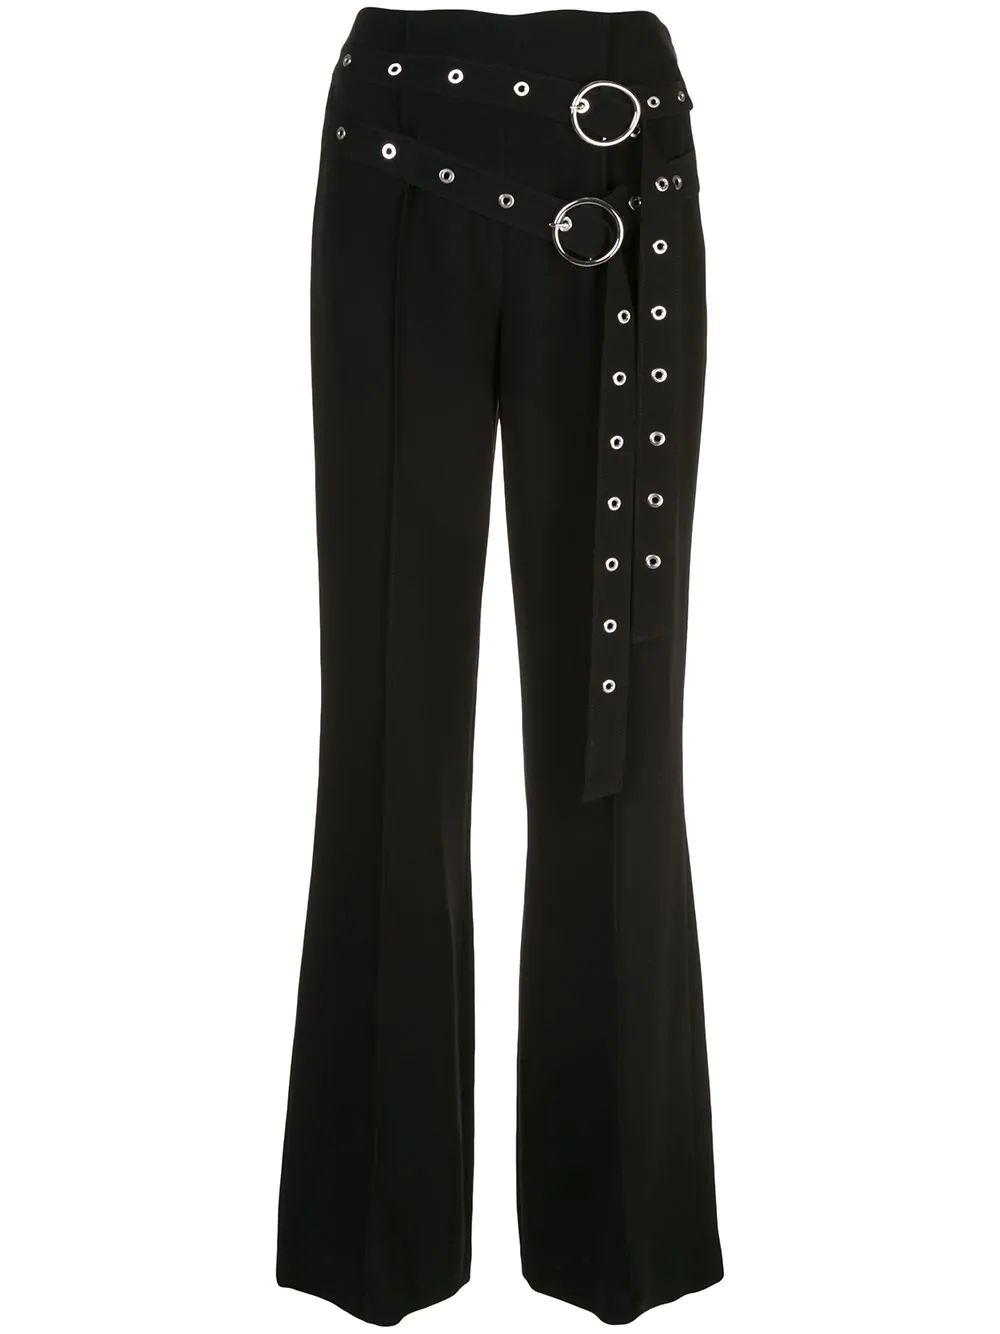 Jessi Double Belted Full Length Pant Item # ZP3371319Z